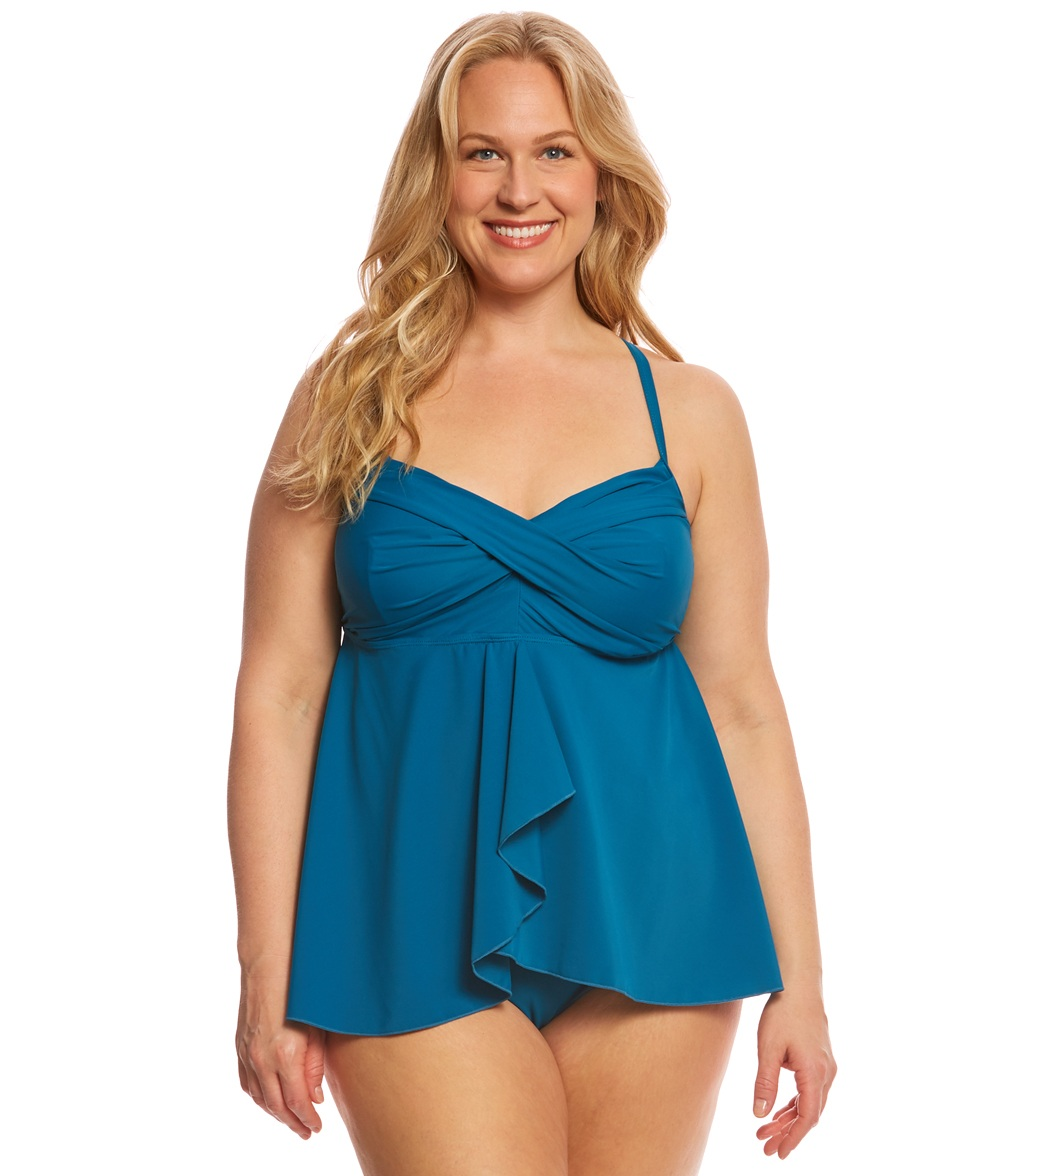 37acb5e85 ClubSwim Plus Size Twist Underwire Flyaway Tankini Top at SwimOutlet.com -  Free Shipping